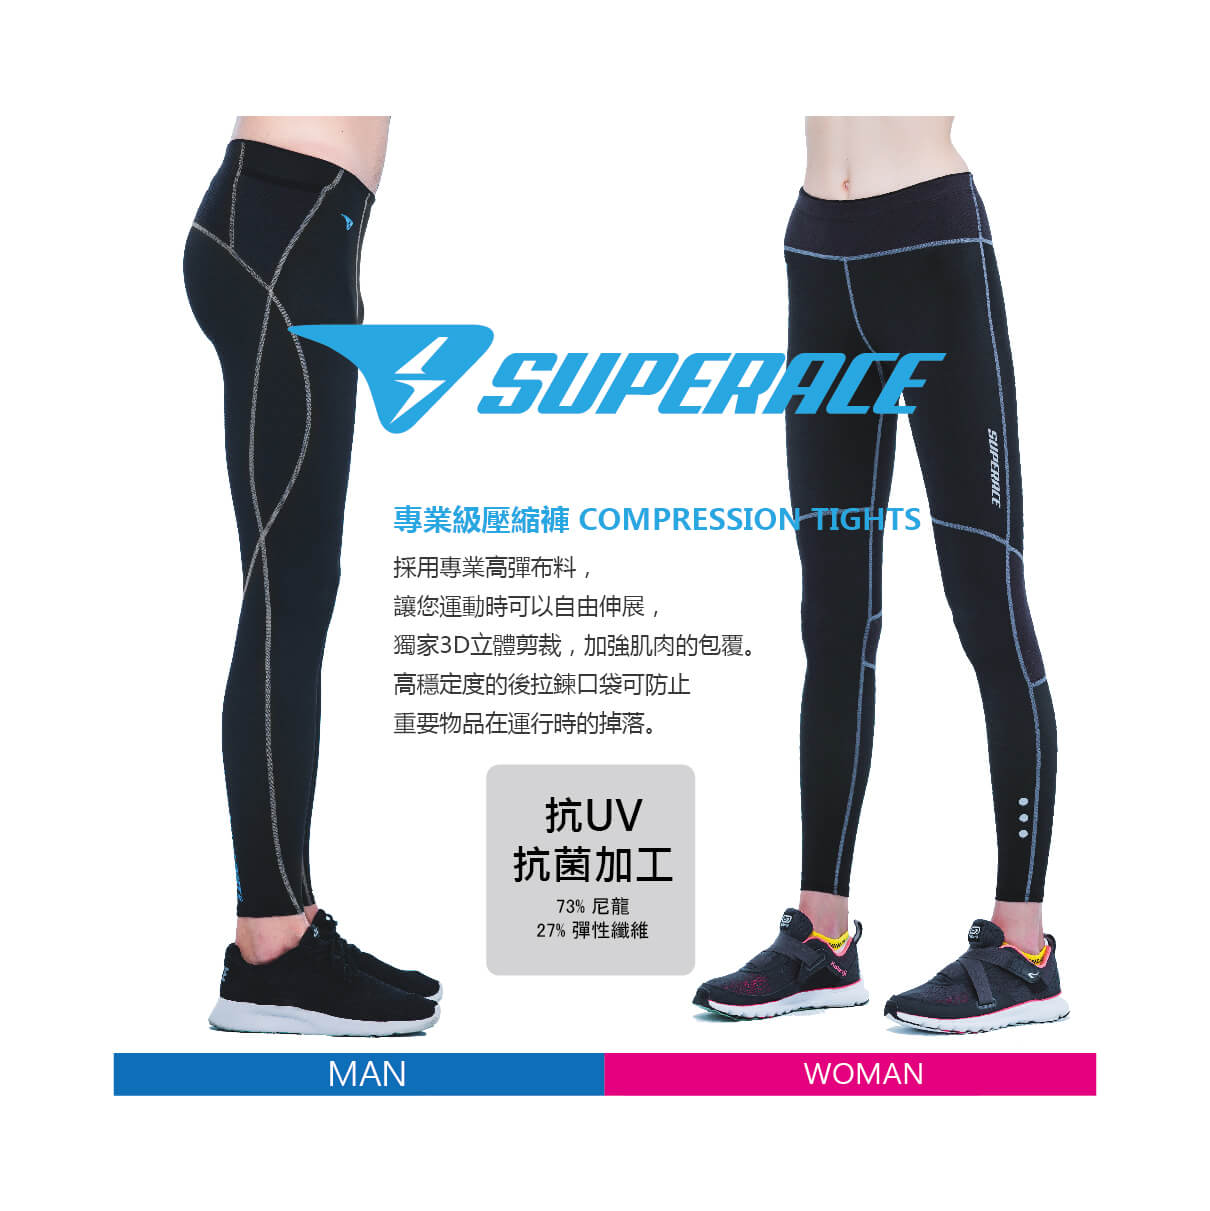 COMPRESSION TIGHTS FOR MAN